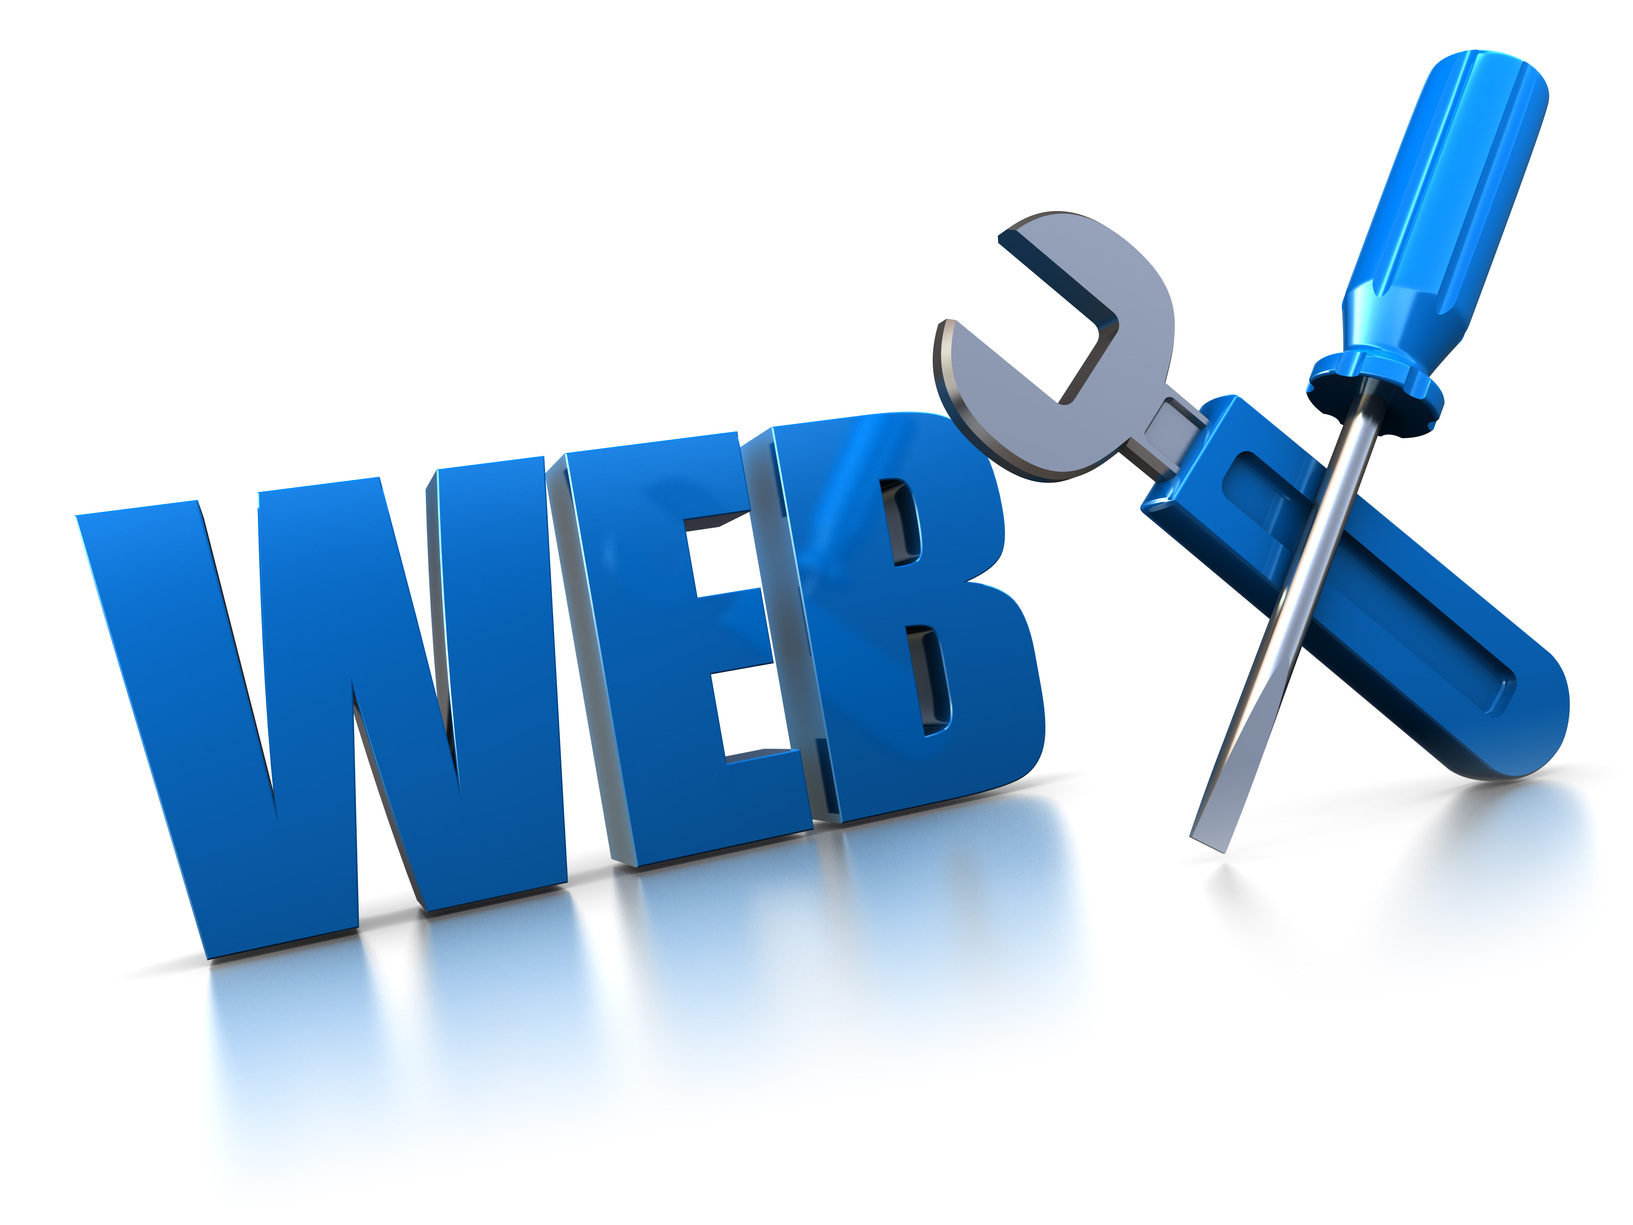 http://dependablewebsitemanagement.com/wp-content/uploads/2015/03/avoid-web-mistakes1.jpg